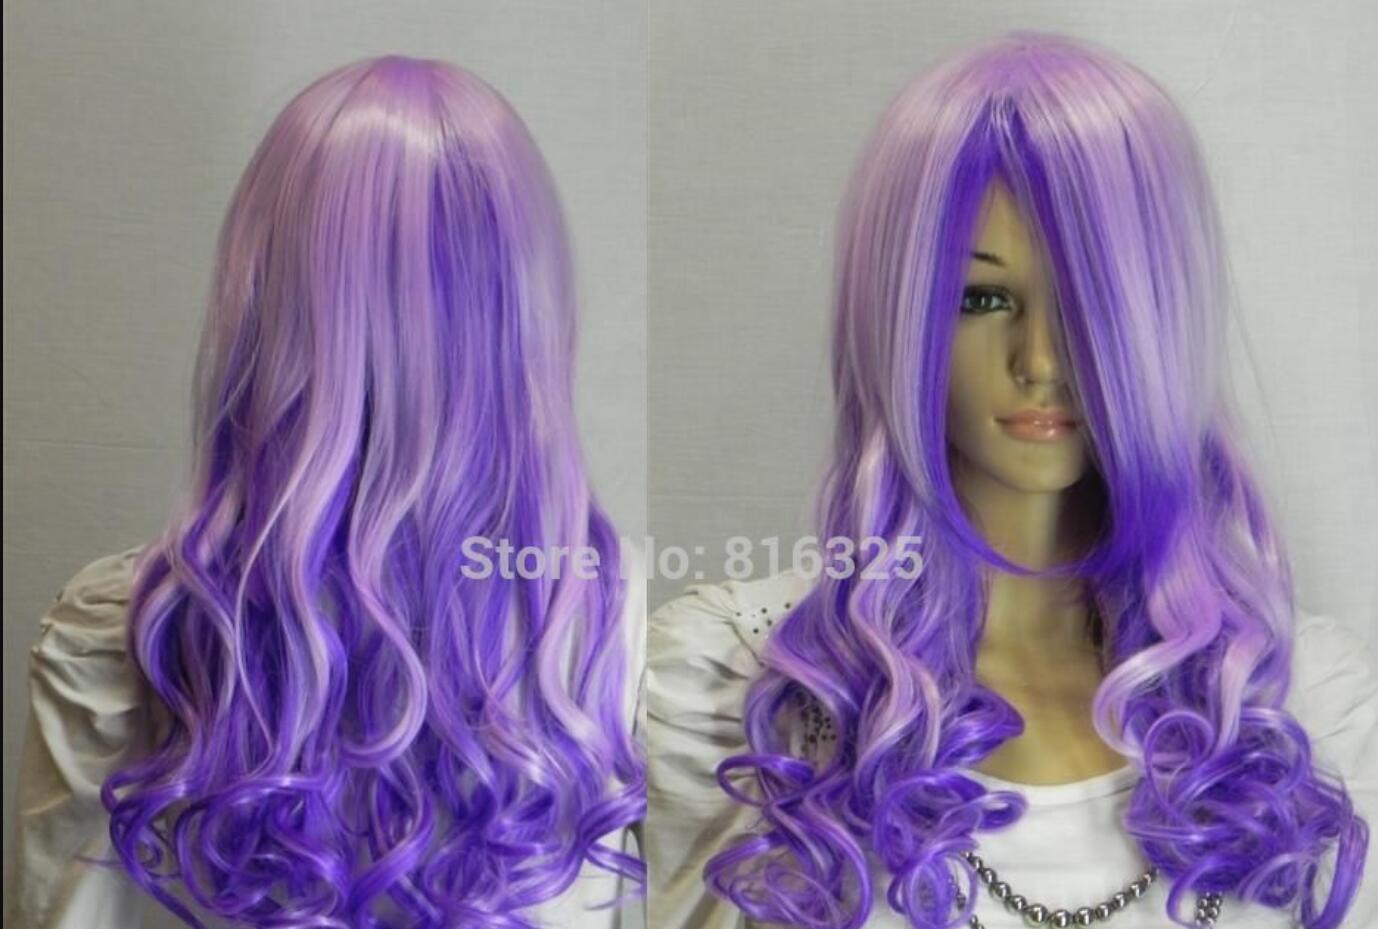 WIG ZCD FREE P&P> nNew4 PURPLE MIX LONG CURLY COSPLAY FULL WIG Discount35%